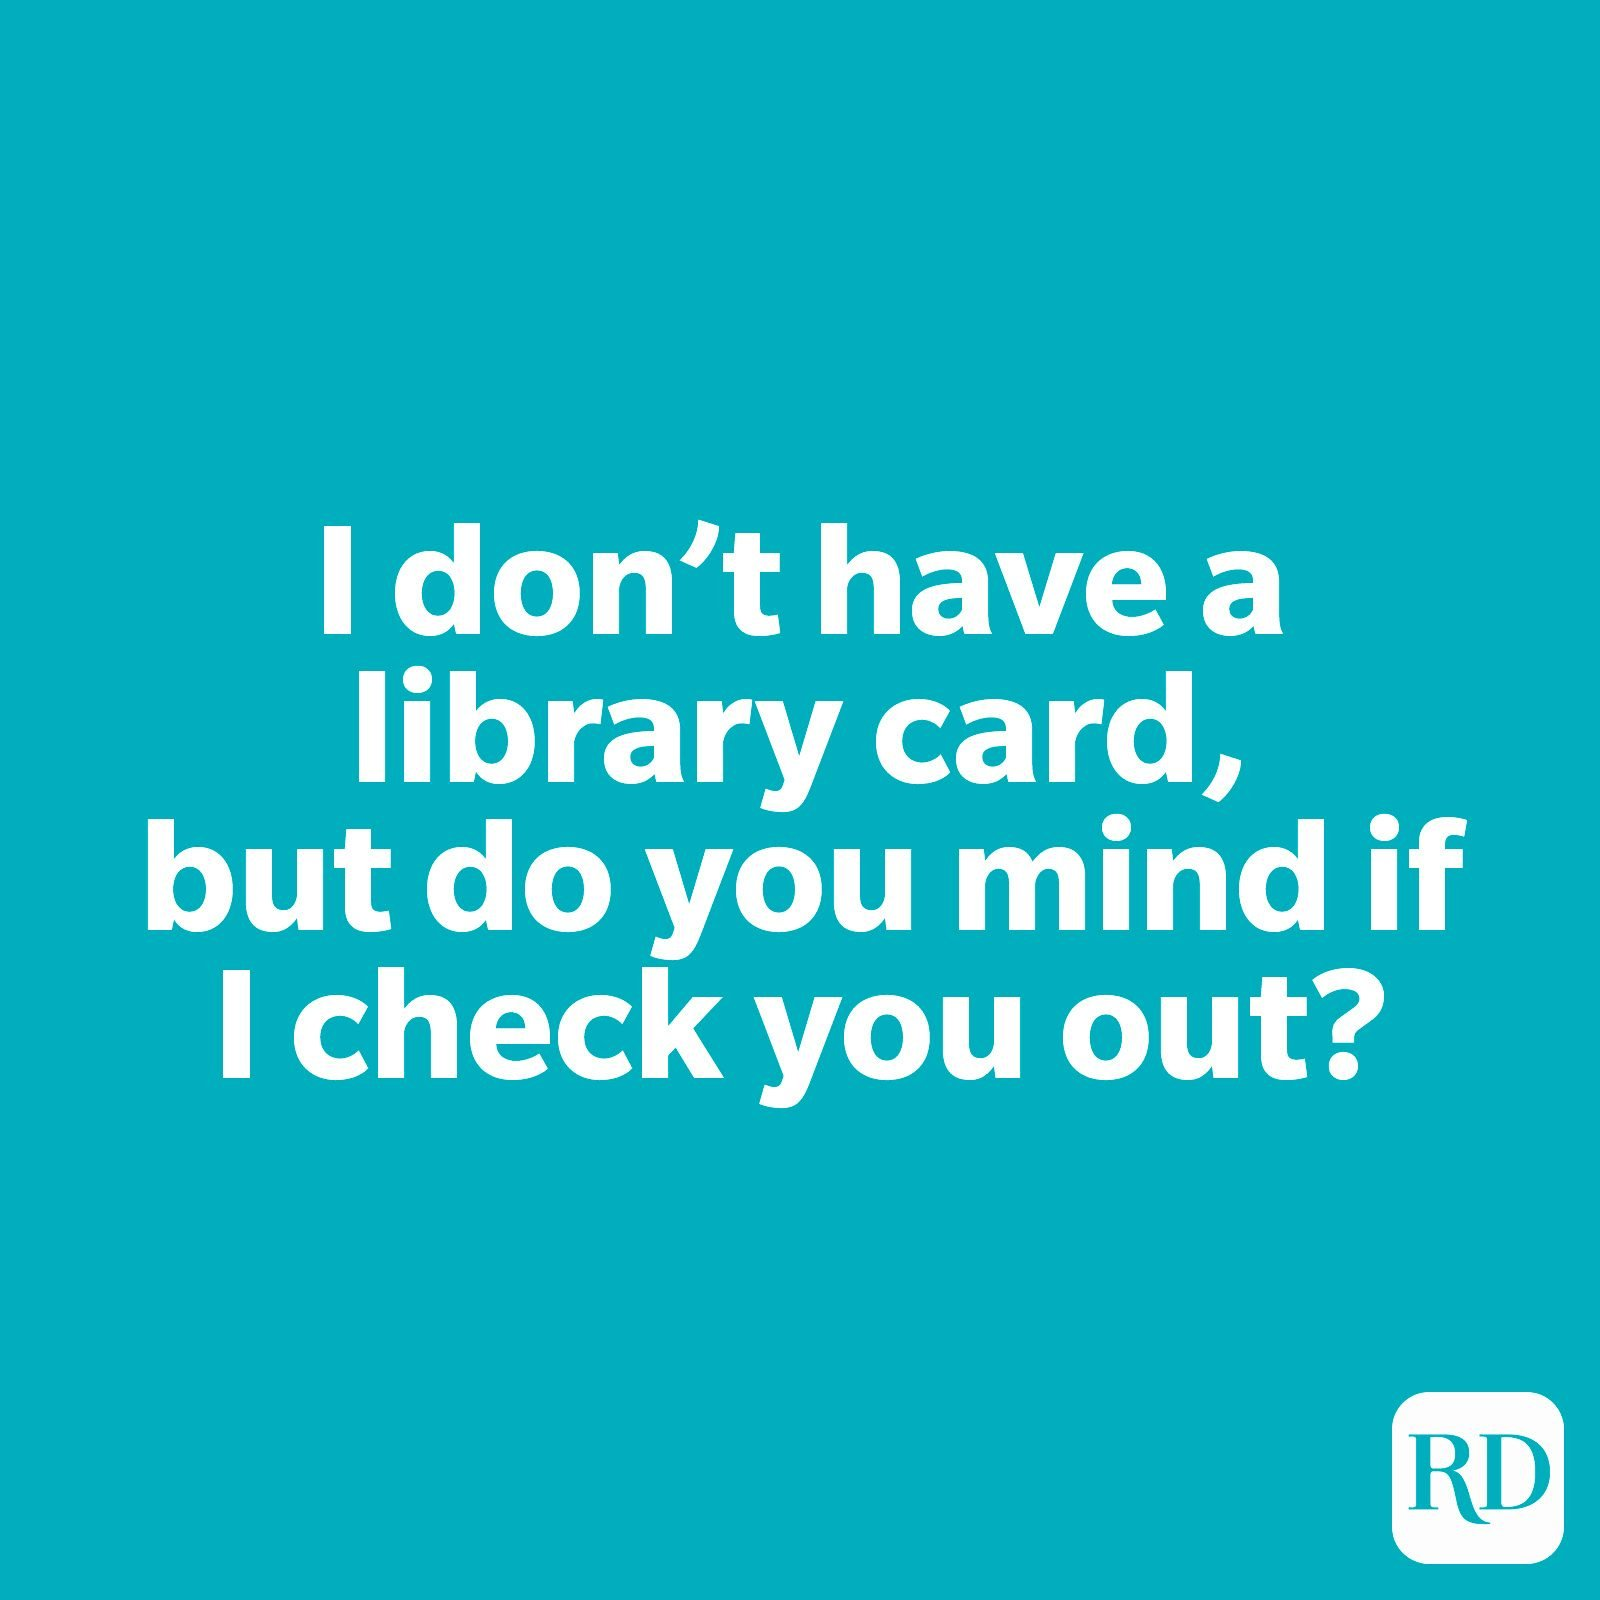 I don't have a library card, but do you mind if I check you out?